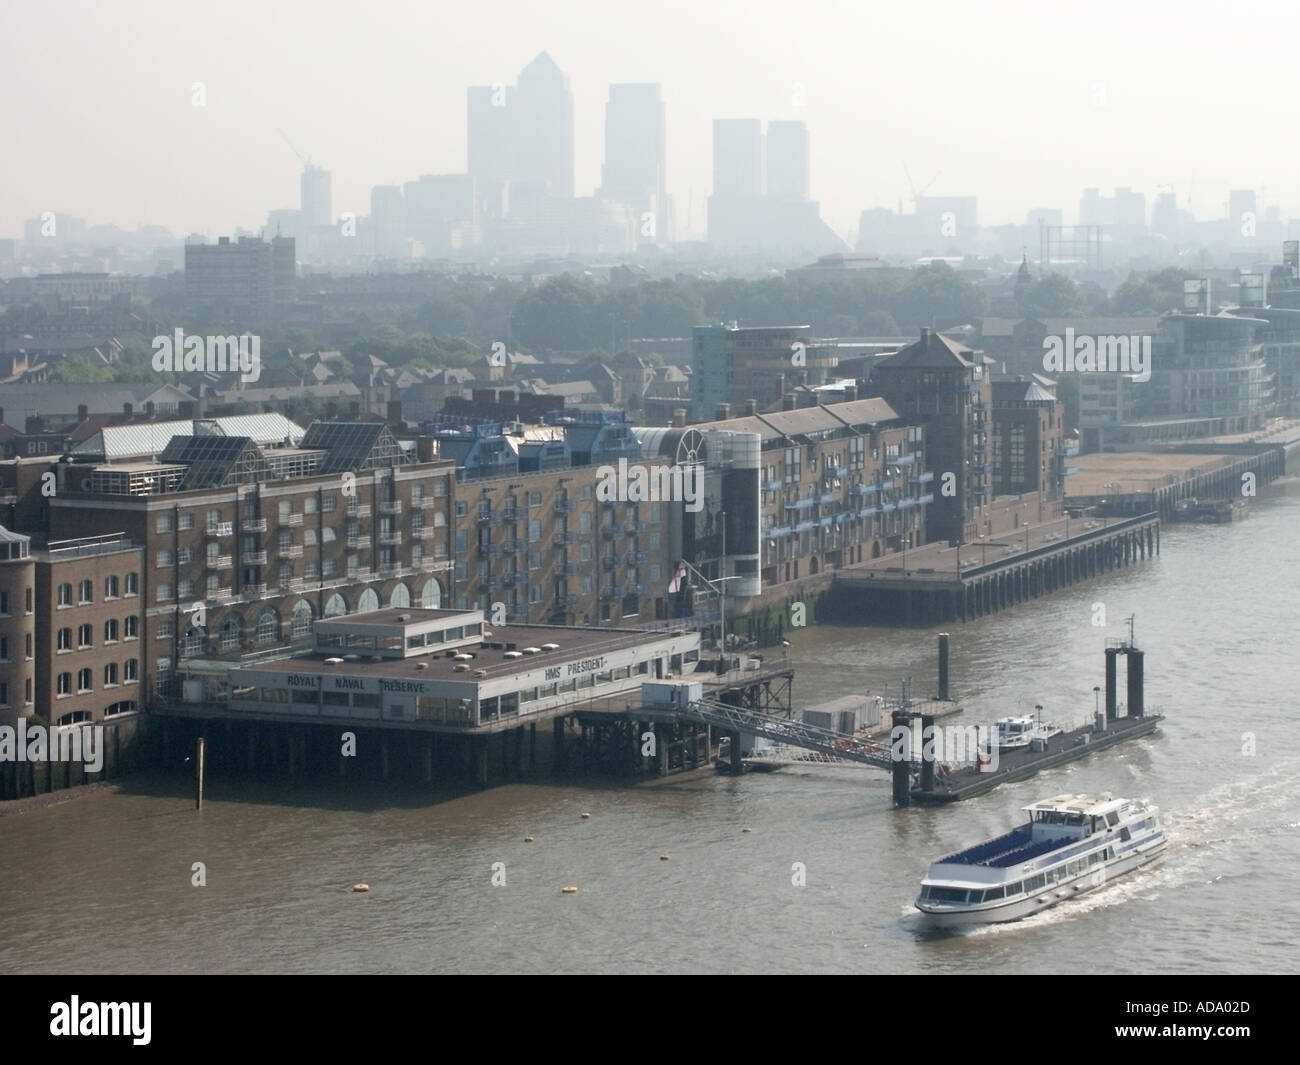 High level view over river Thames and east London with Canary Wharf docklands landmark skyscrapers shrouded in haze Tower Hamlets London England UK - Stock Image